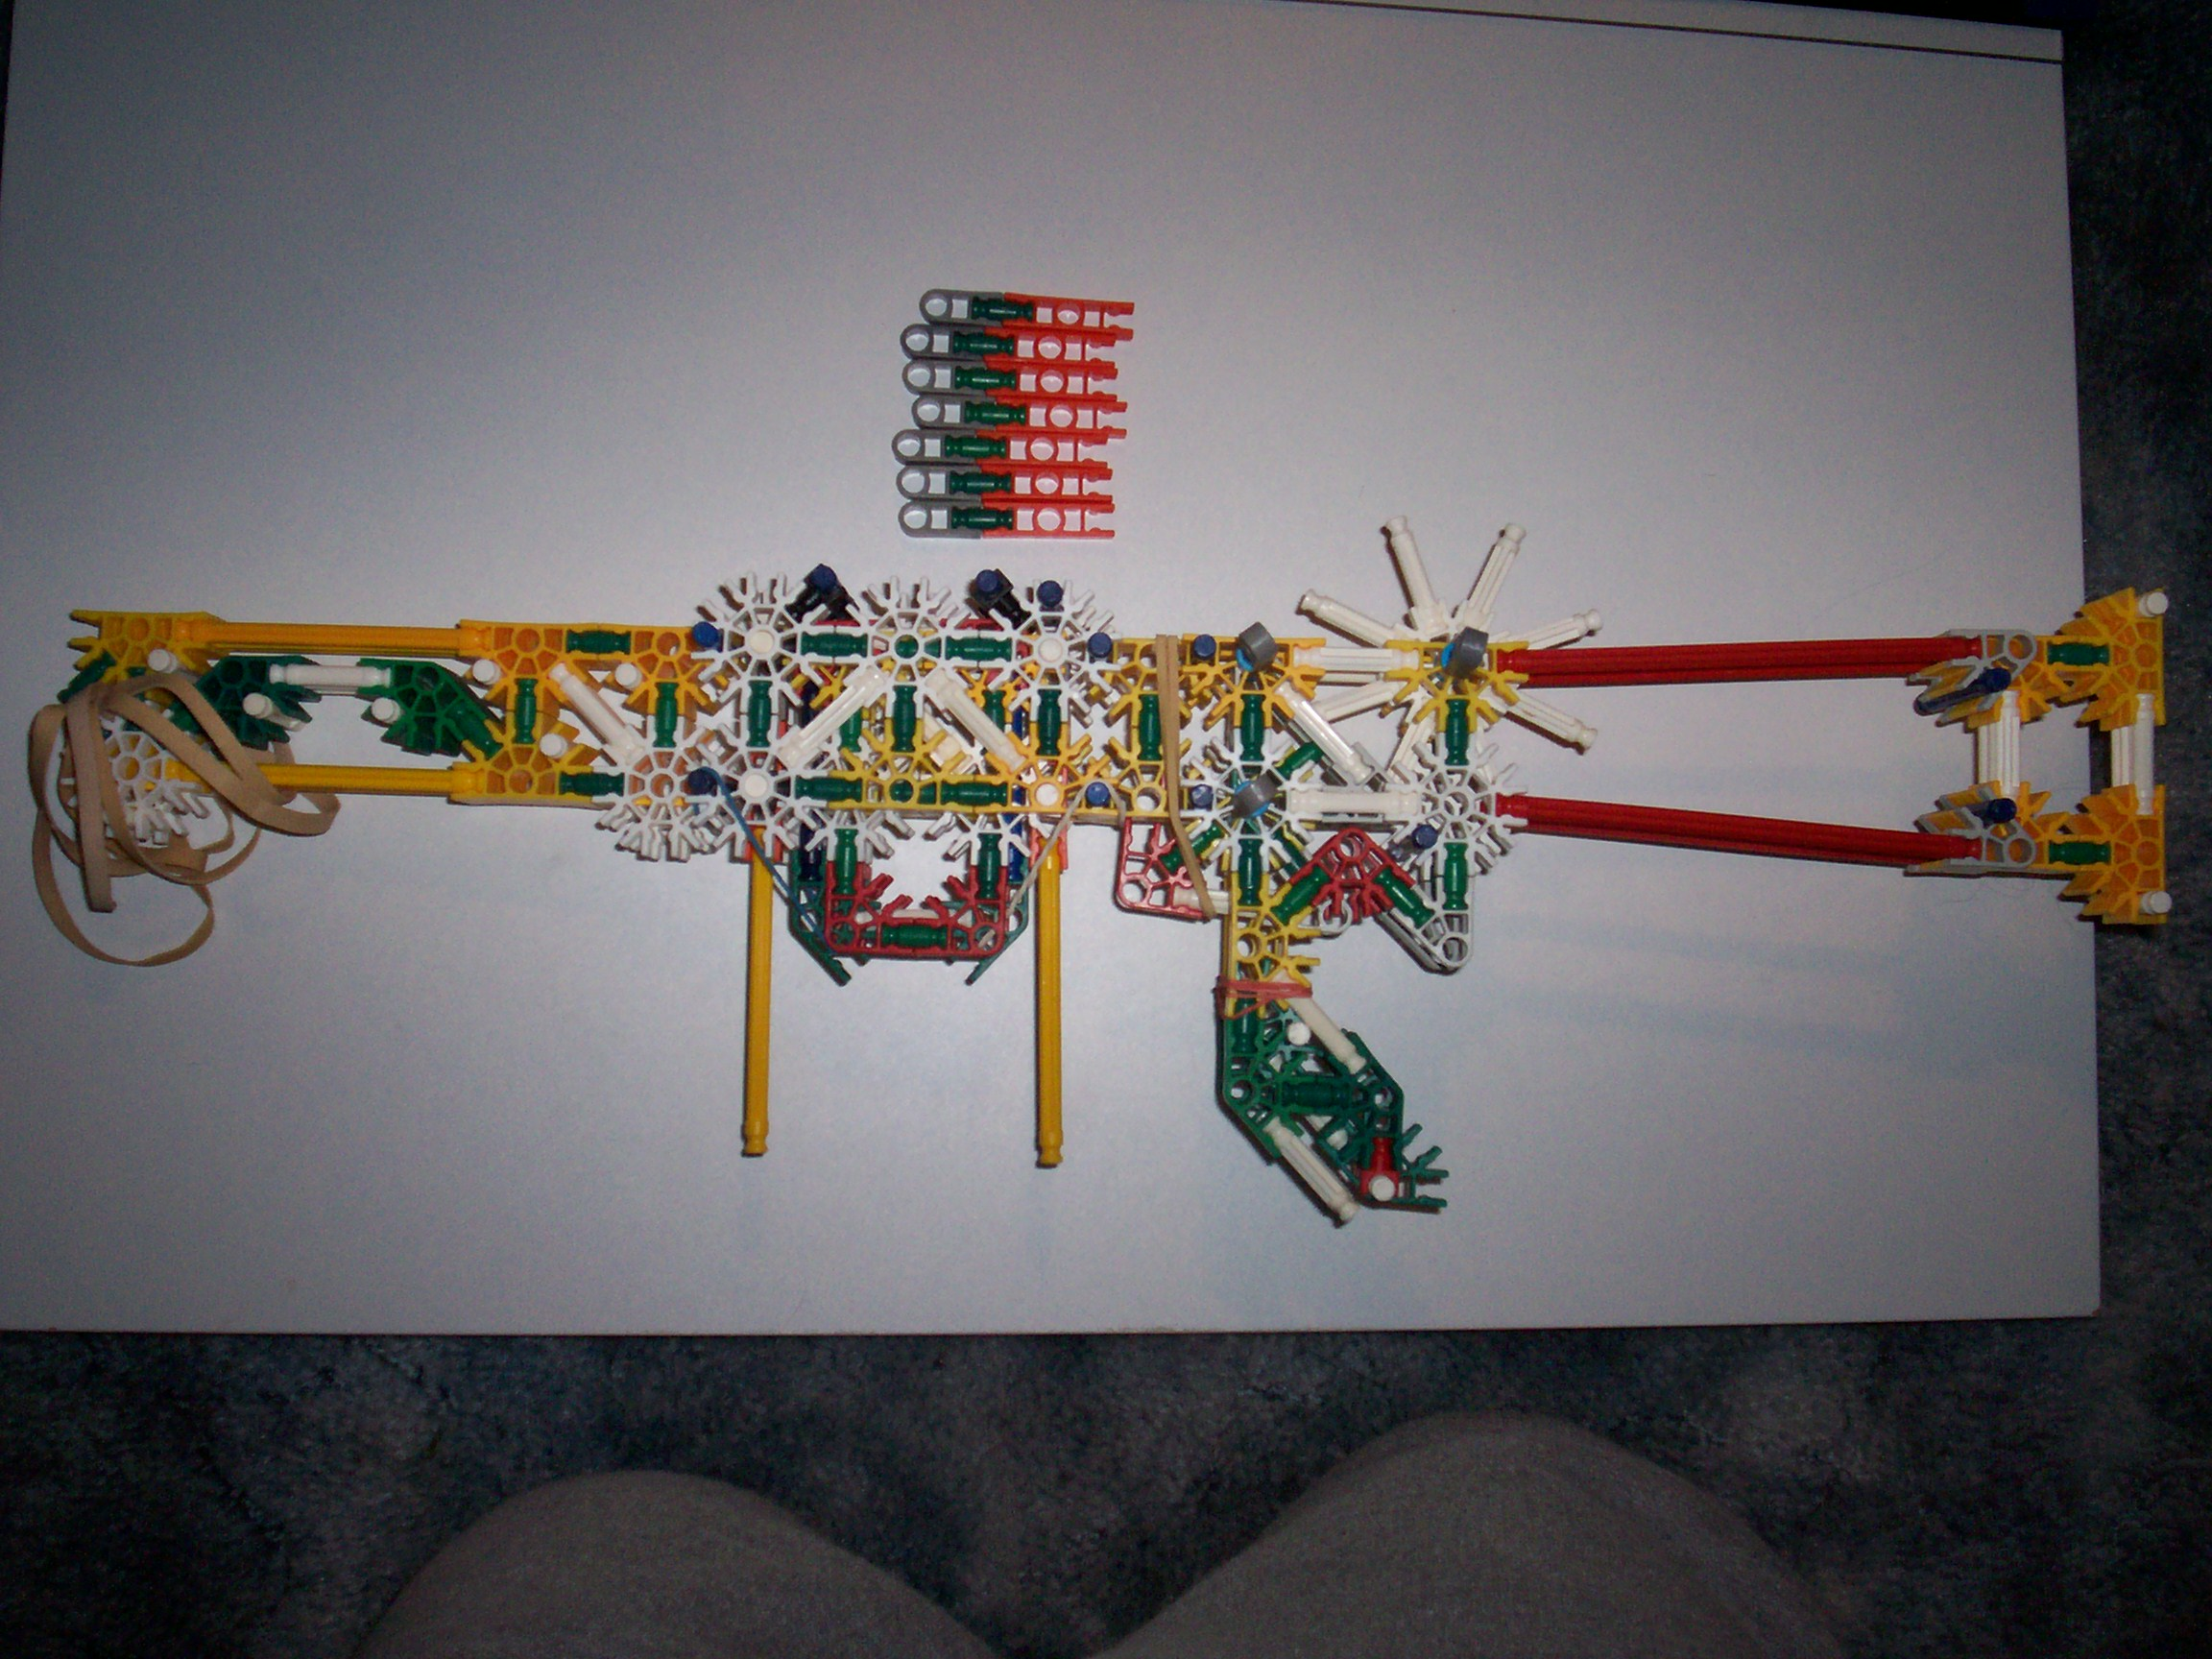 Semi-automatic 7 Shot Knex Rifle